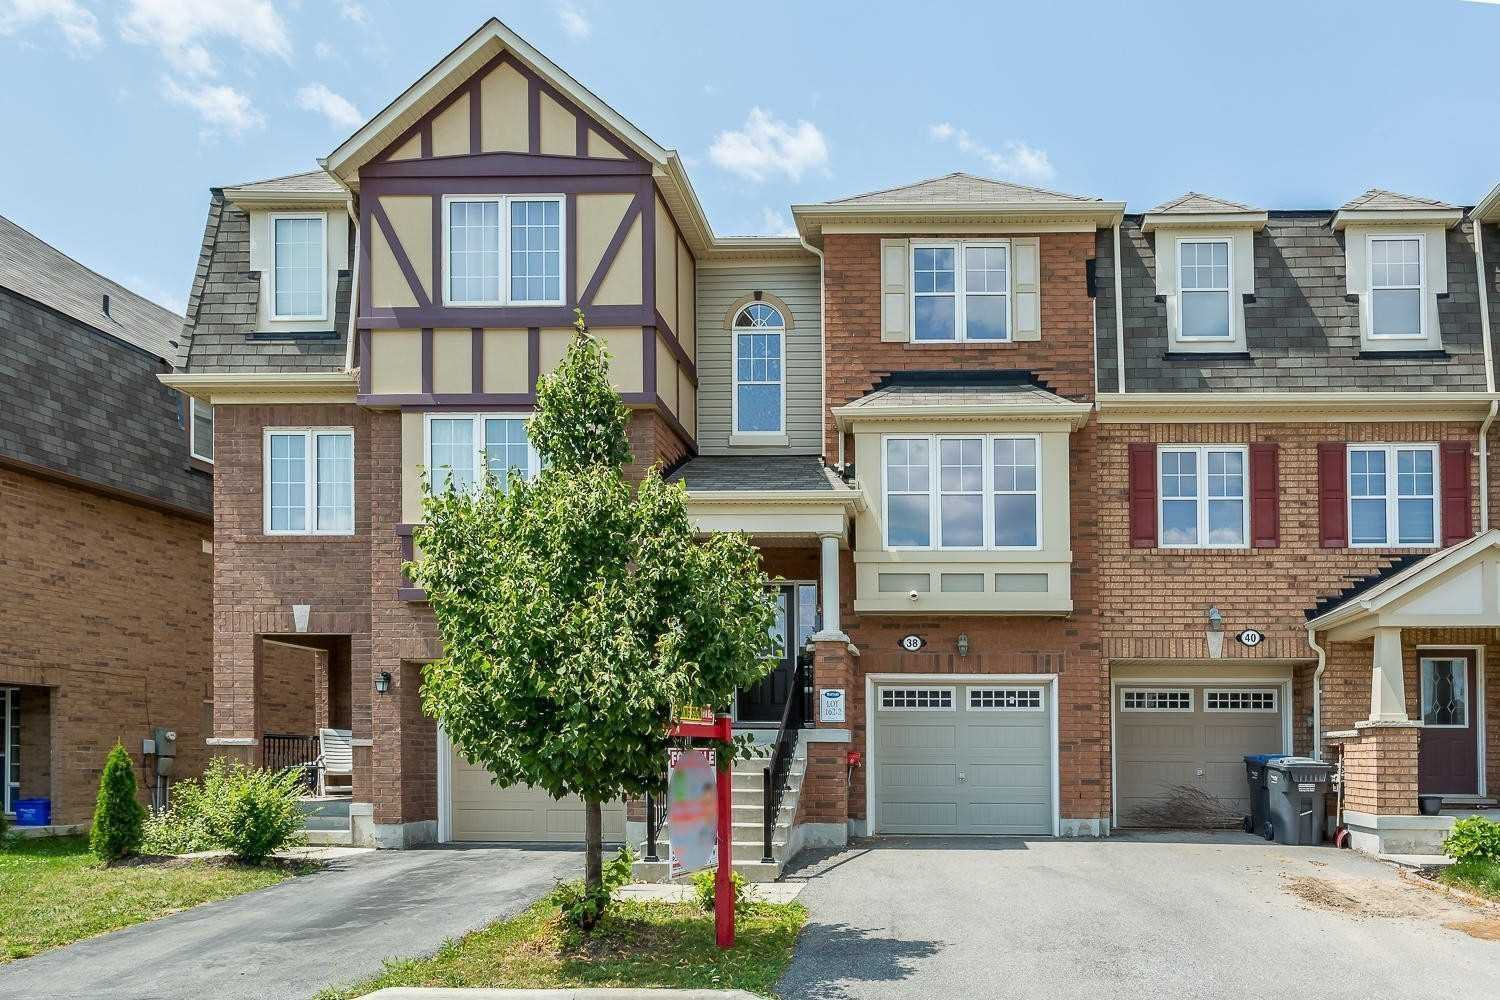 Main Photo: 38 Memory Lane in Brampton: Northwest Brampton House (3-Storey) for sale : MLS®# W4556139